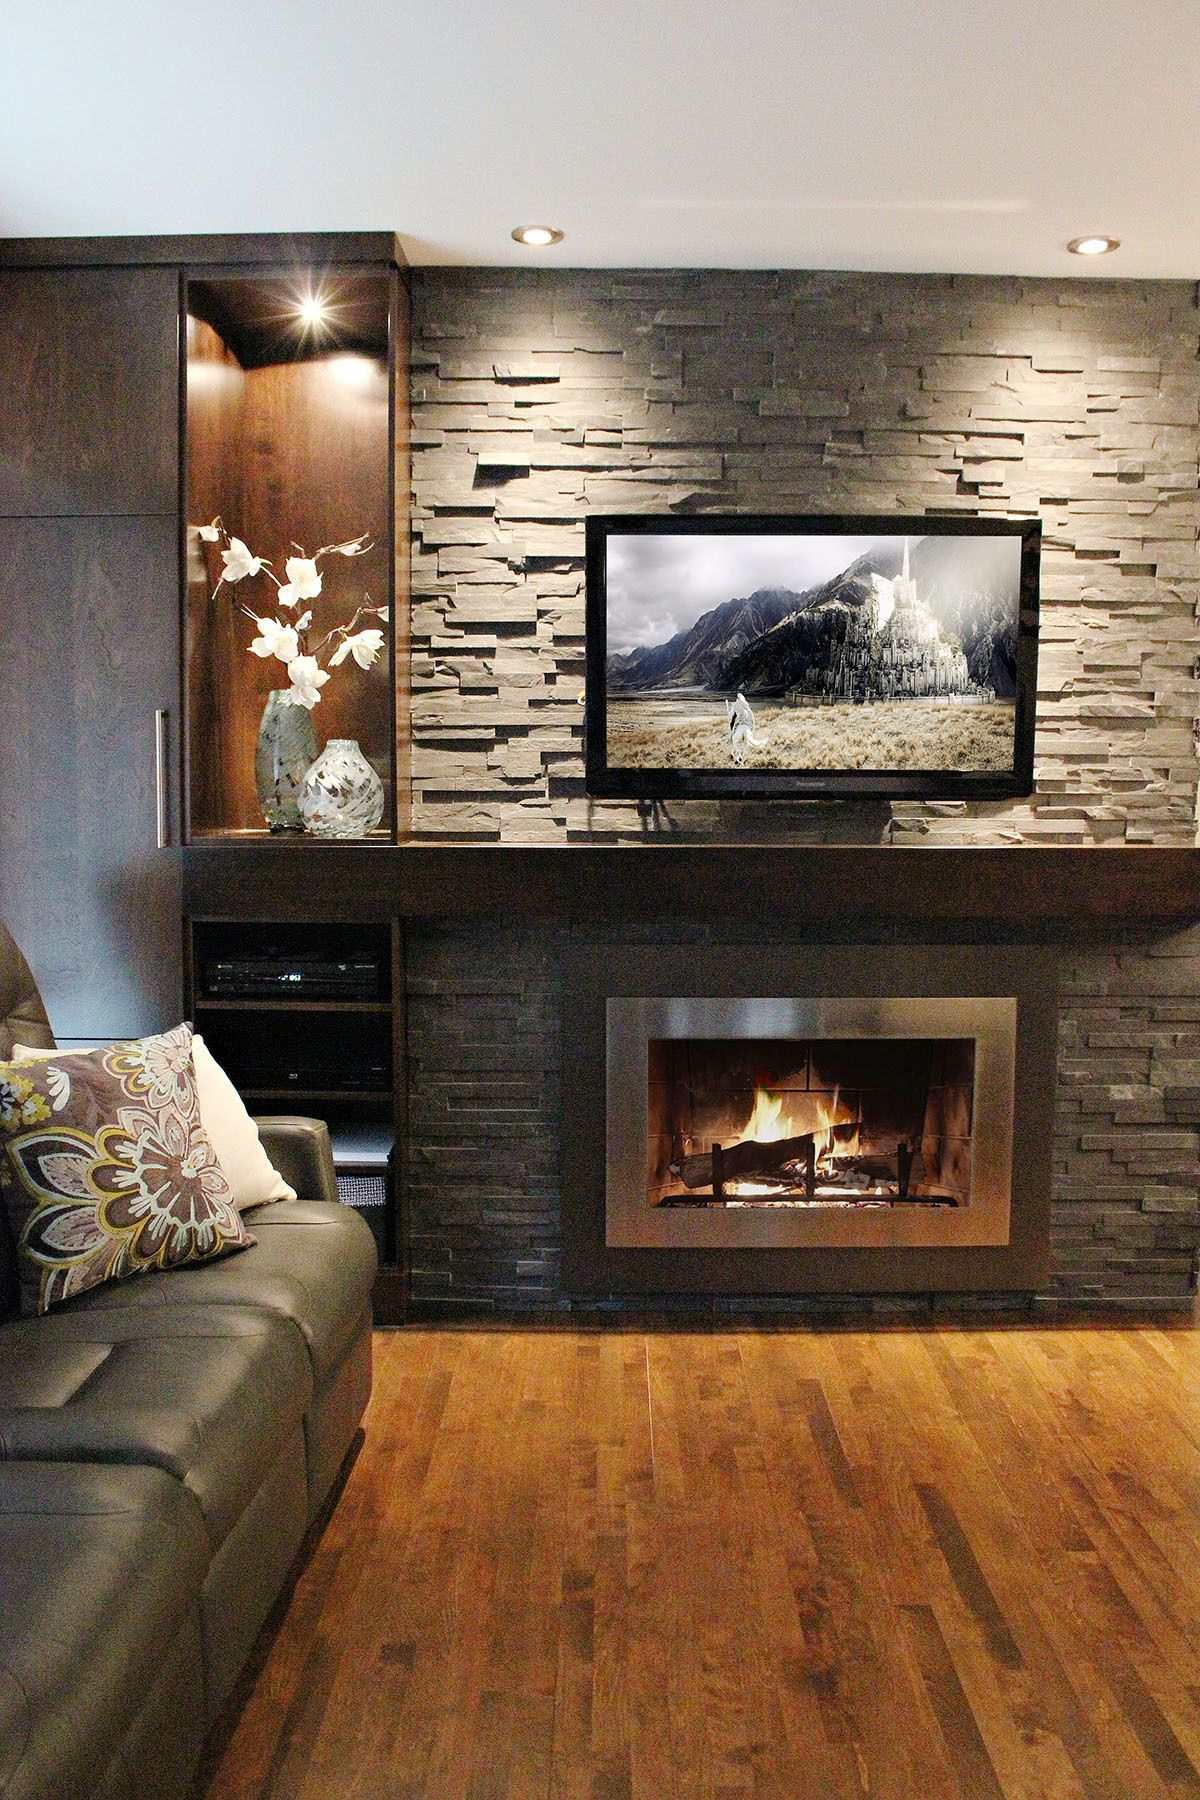 Cool Fireplace Ideas New 30 Incredible Fireplace Ideas for Your Best Home Design